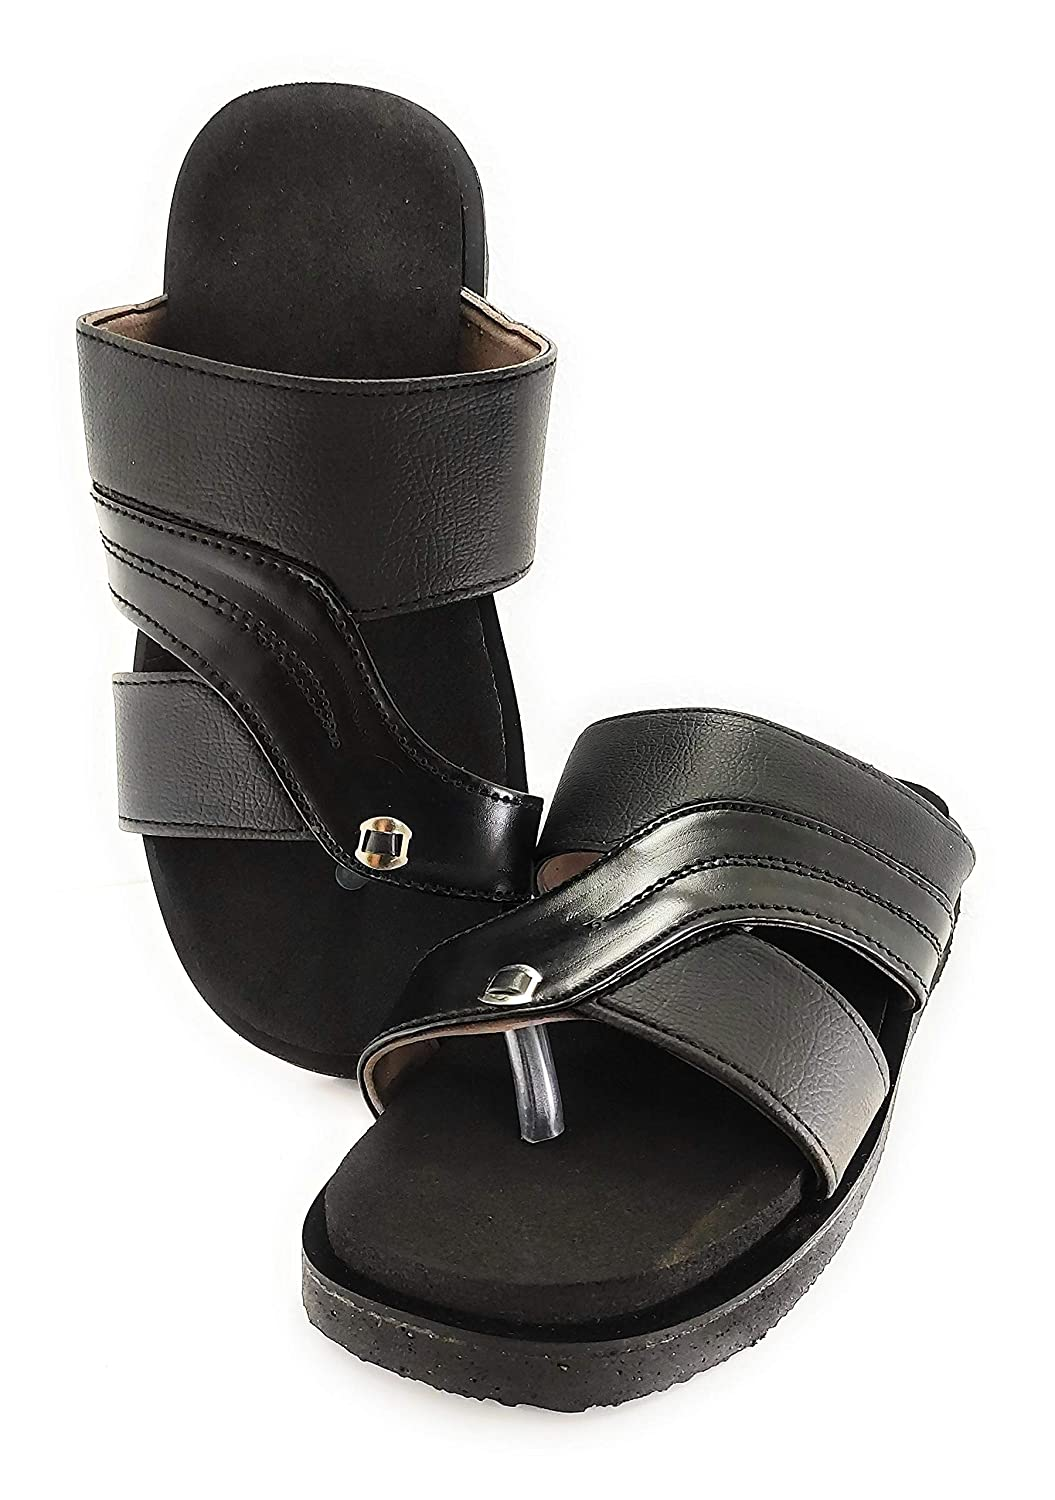 Meditouch Mcr Mcp Footwear Ortho Gents 6 Black Amazon In